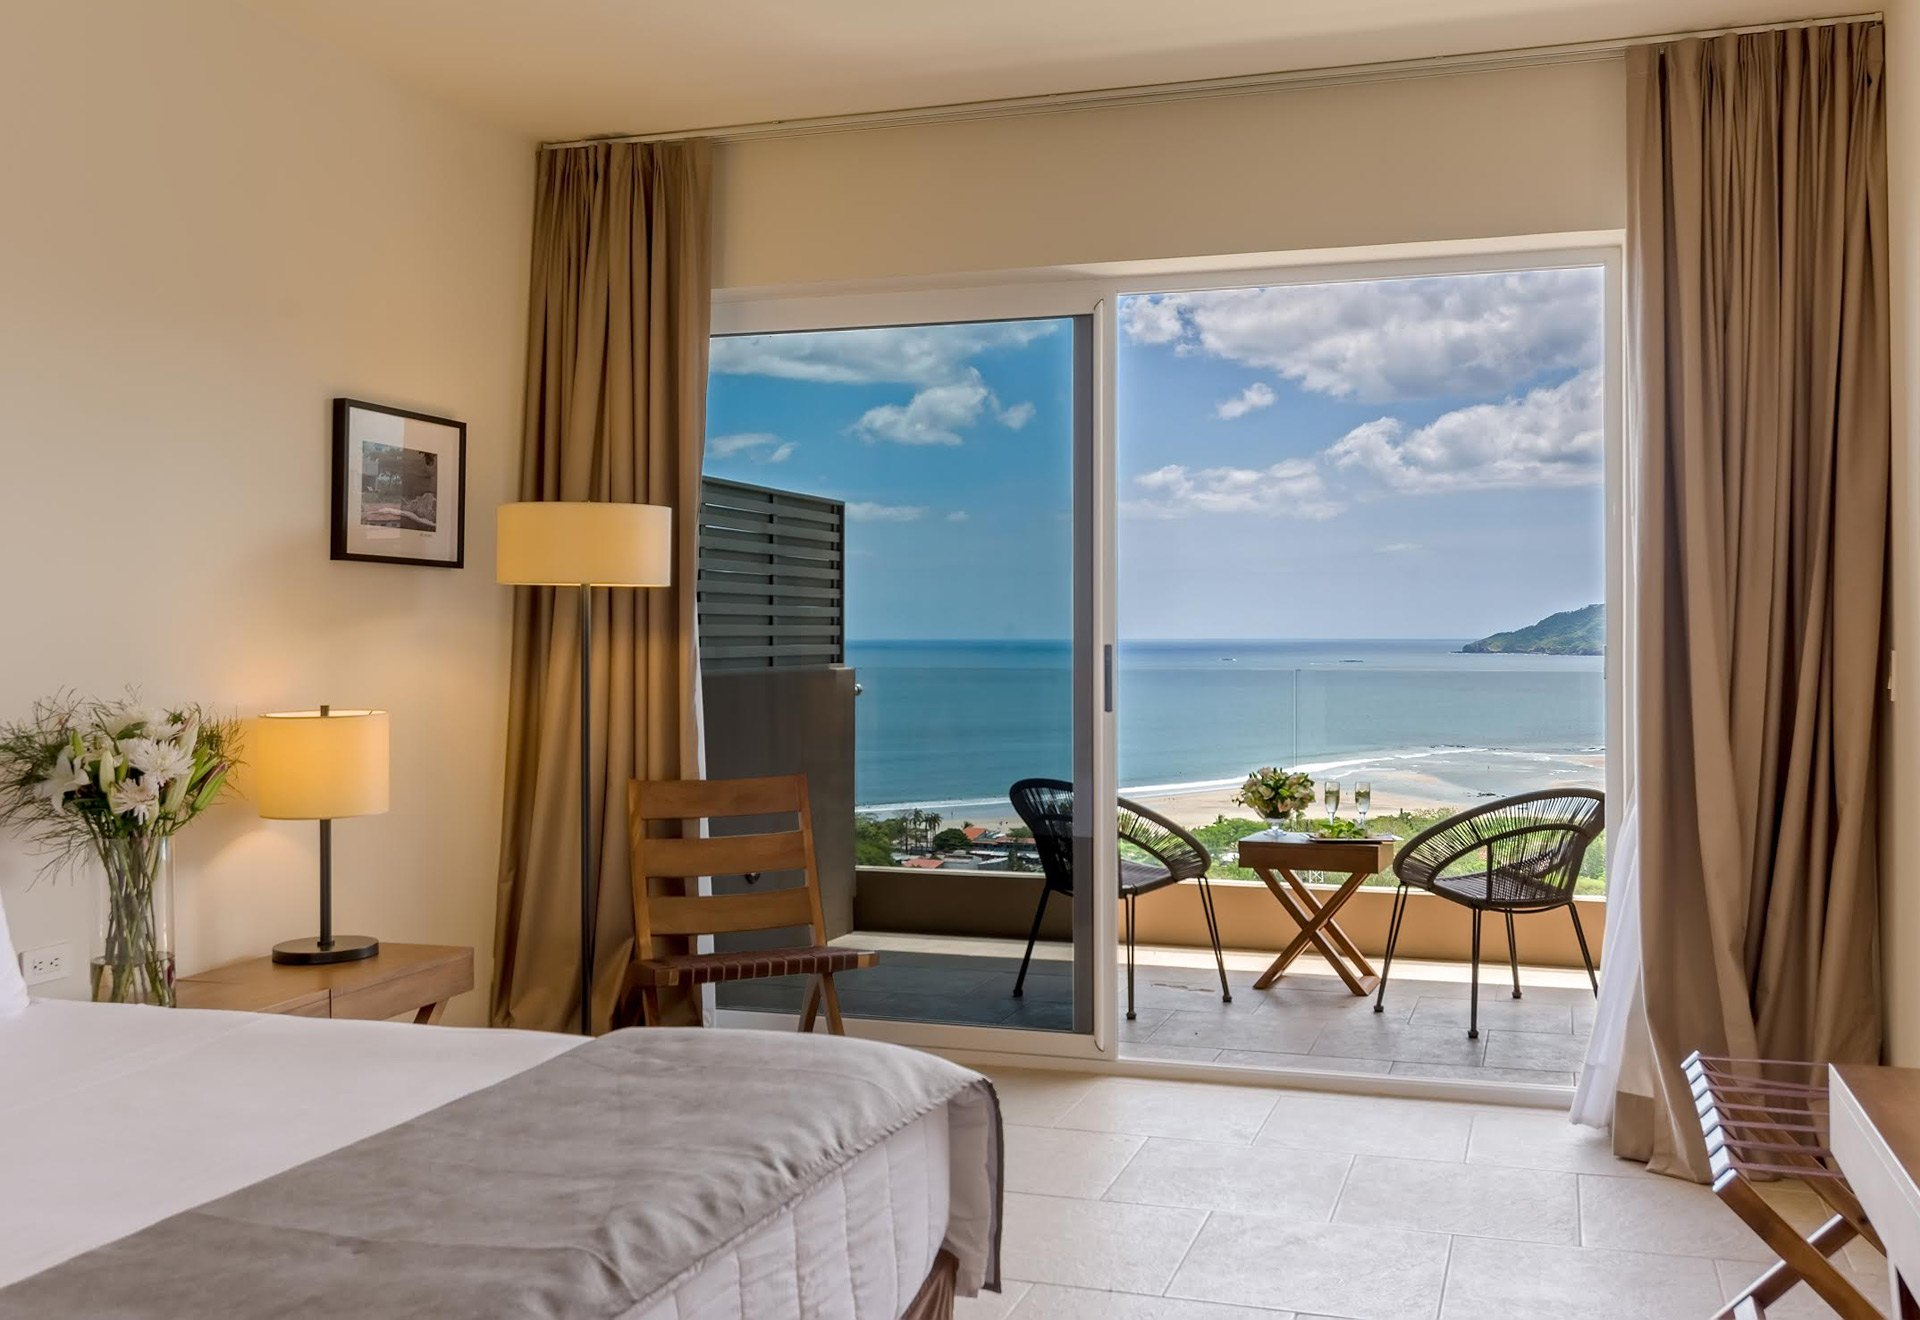 Tamarindo Wyndham Ocean view room